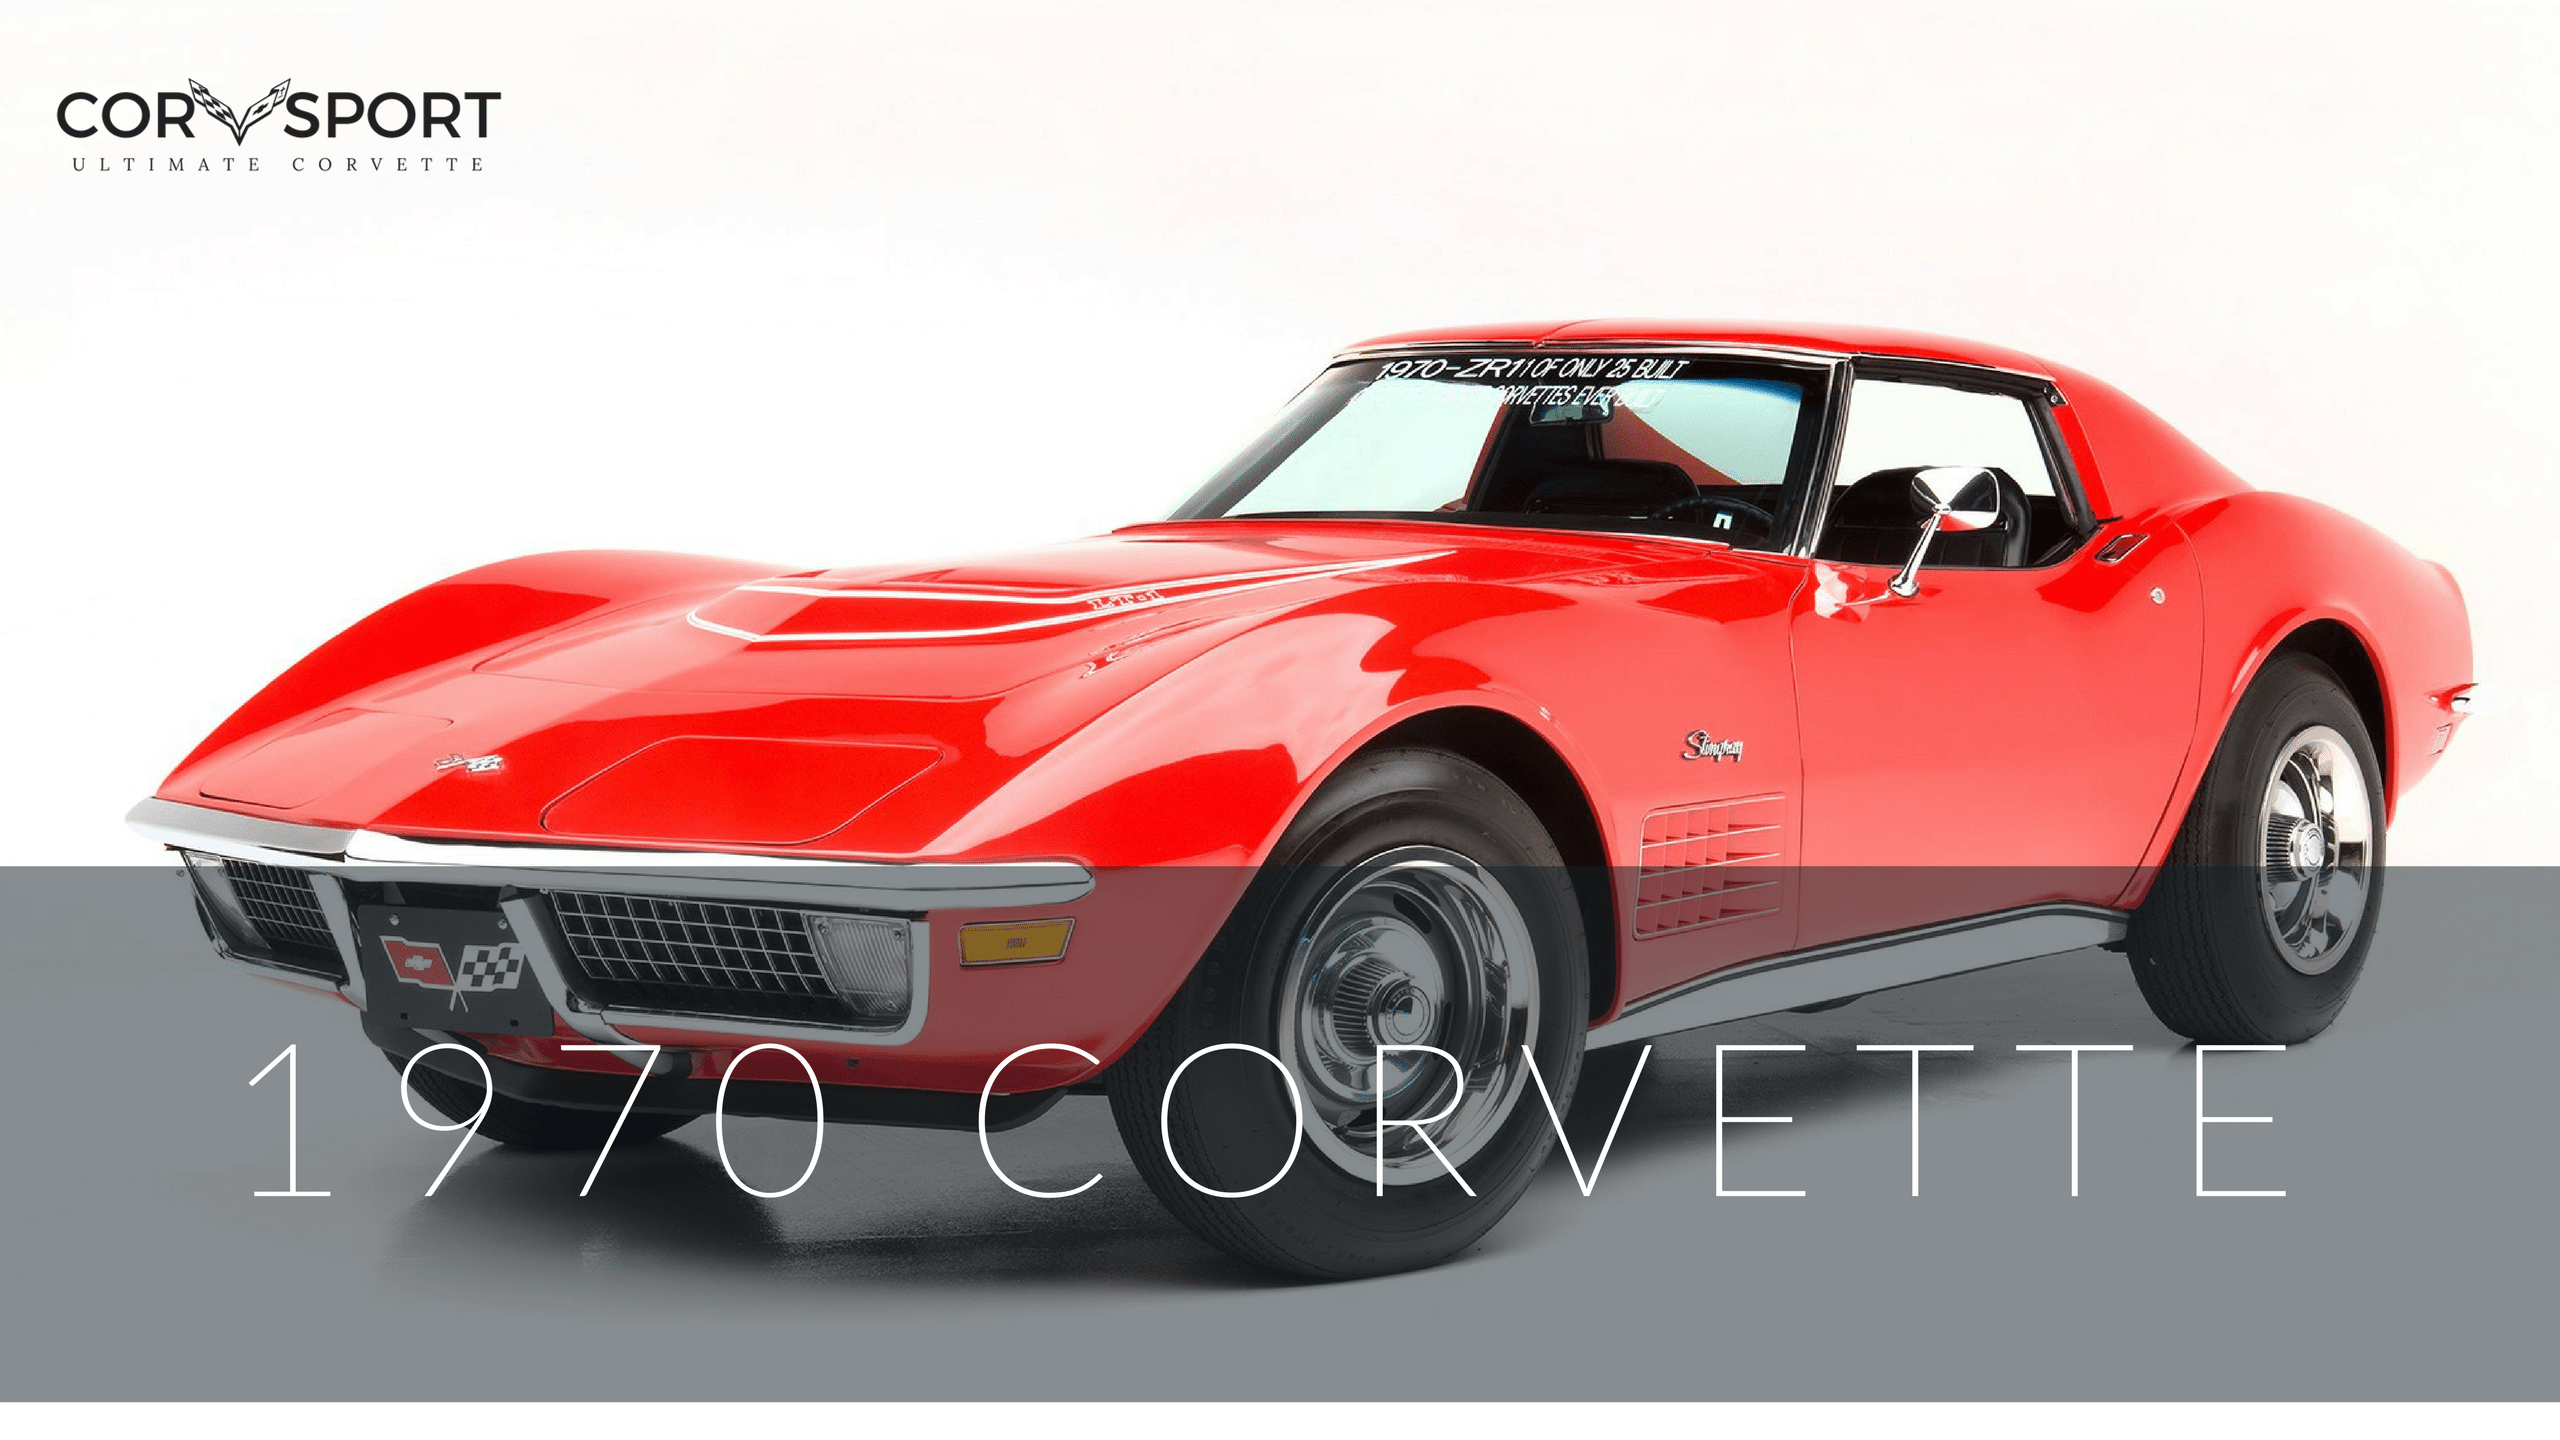 1970 c3 corvette ultimate guide overview specs vin info rh corvsport com